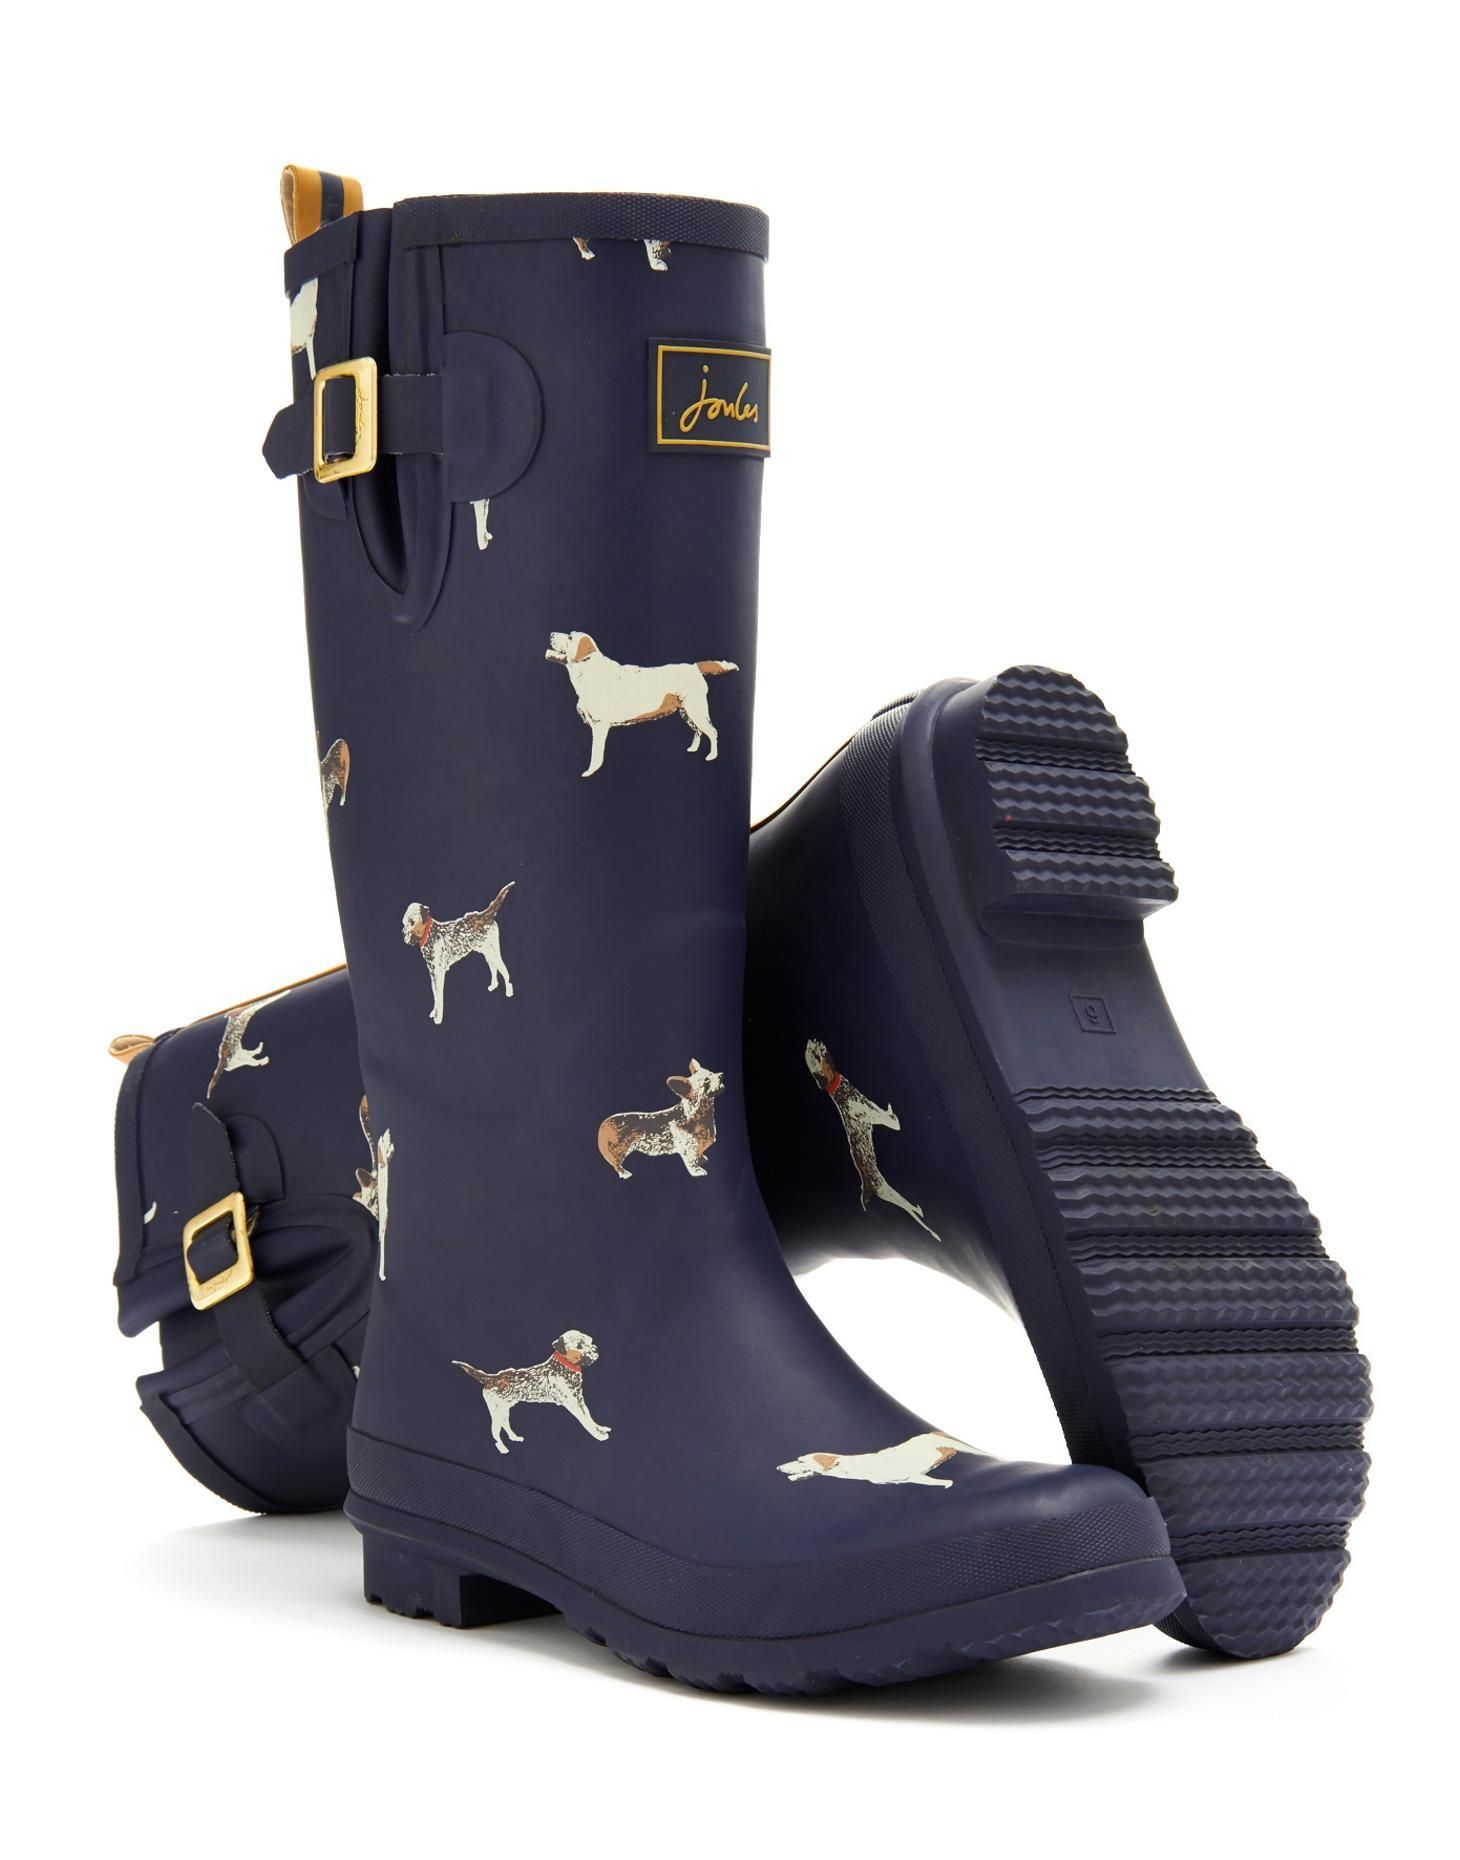 Navy Dog Wellyprint Womens Print Rain Boot Wellies | Joules US Available at Target...don't really need them however.